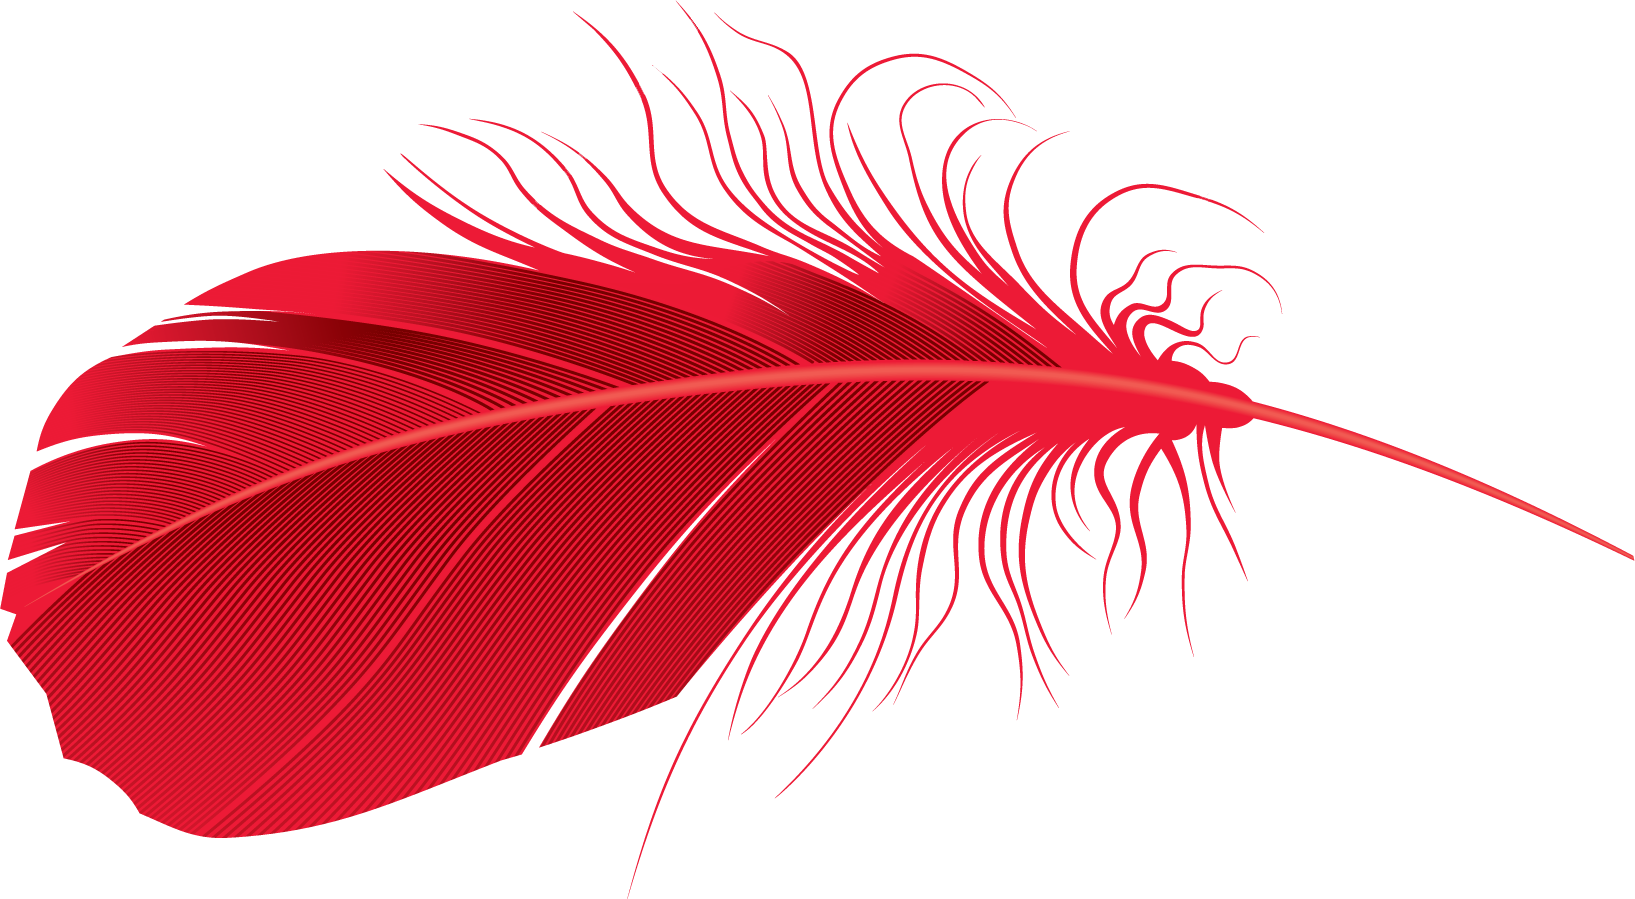 Red feather clipart image black and white download Download red Feather PNG Transparent Image #8 - Free ... image black and white download